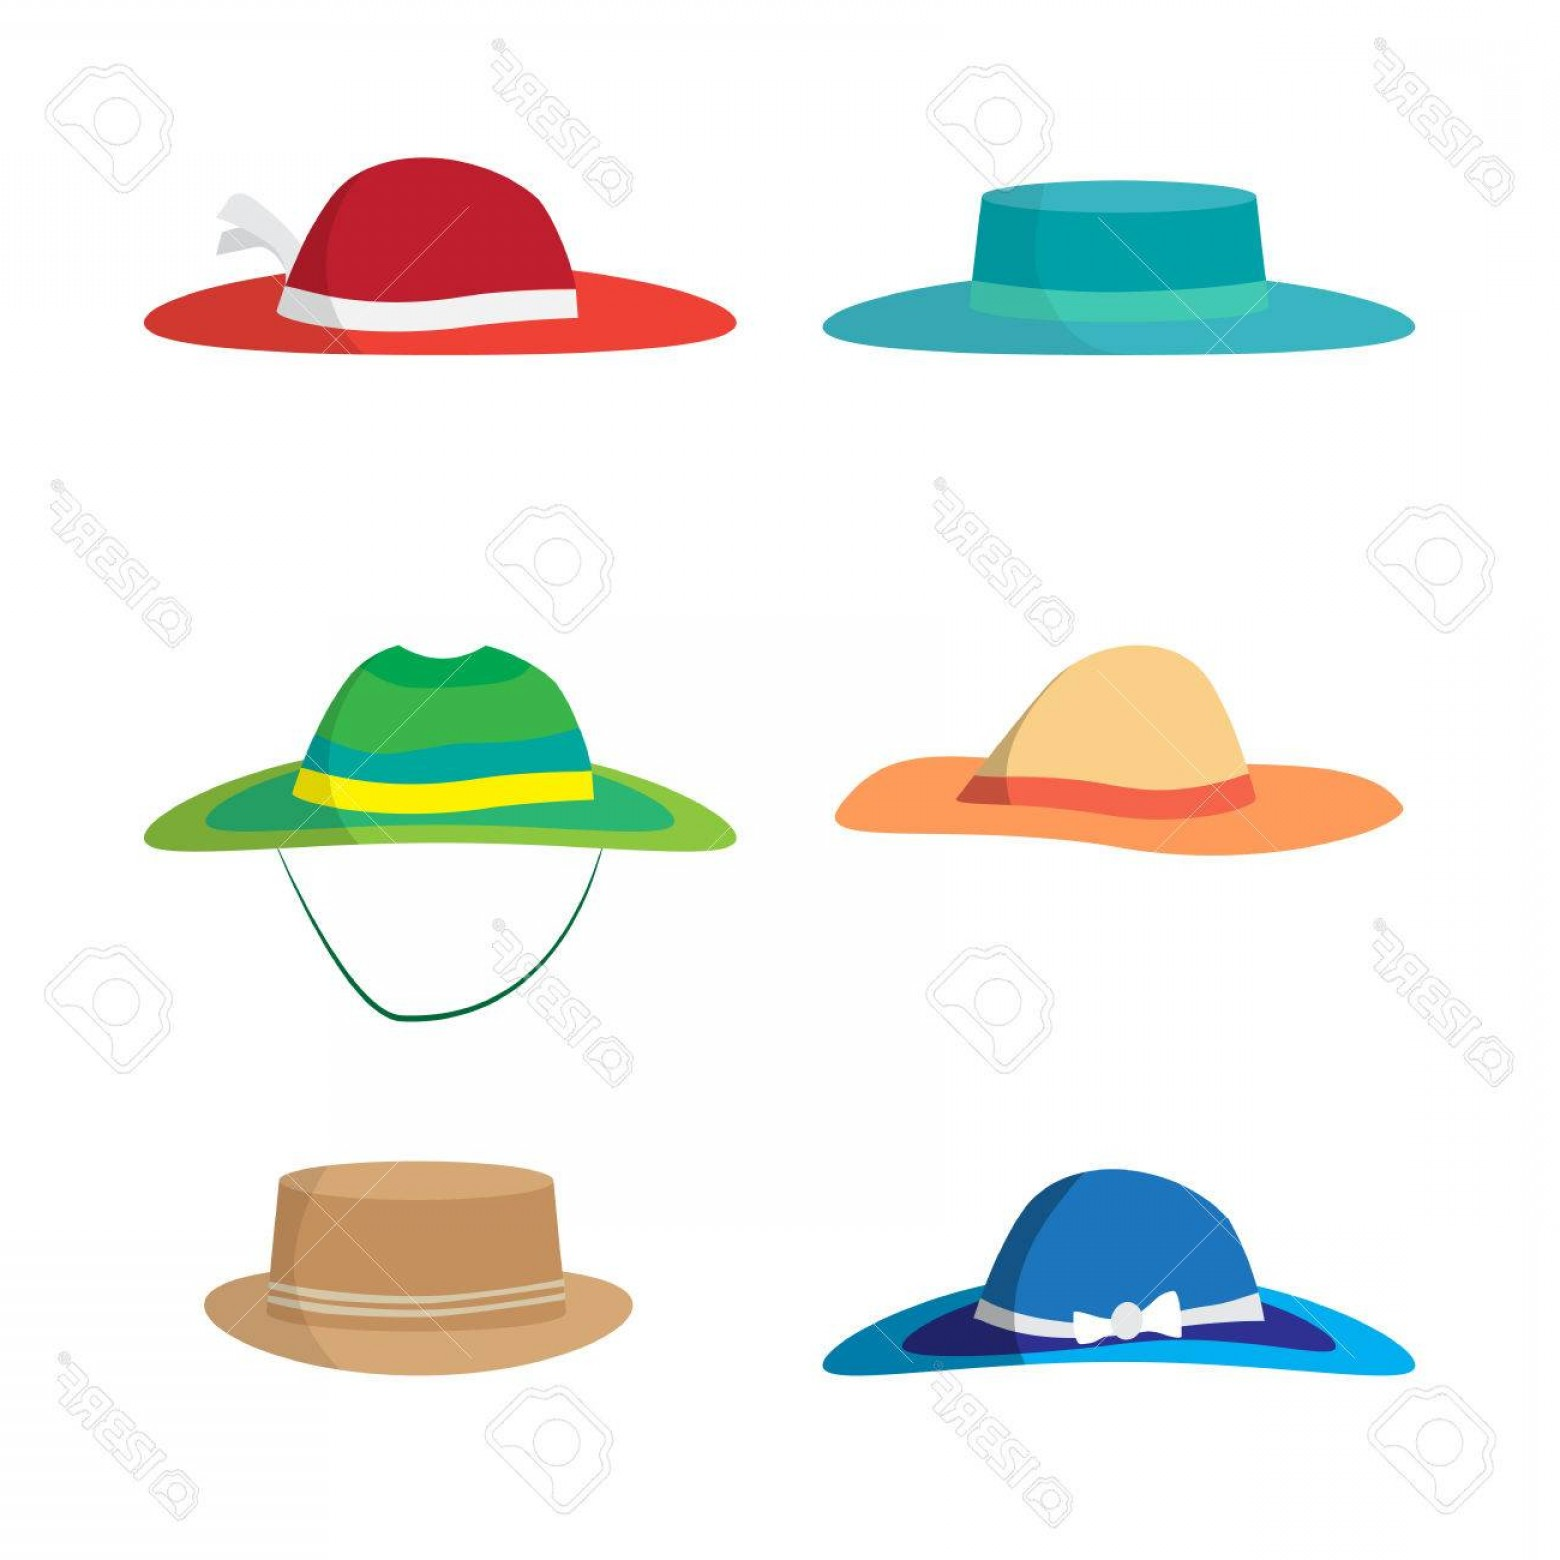 Vector Beach Hats: Photostock Vector Set Of Different Colored Beach Hats Headgear To Protect Against The Sun On The Beach Flat Vector Ill